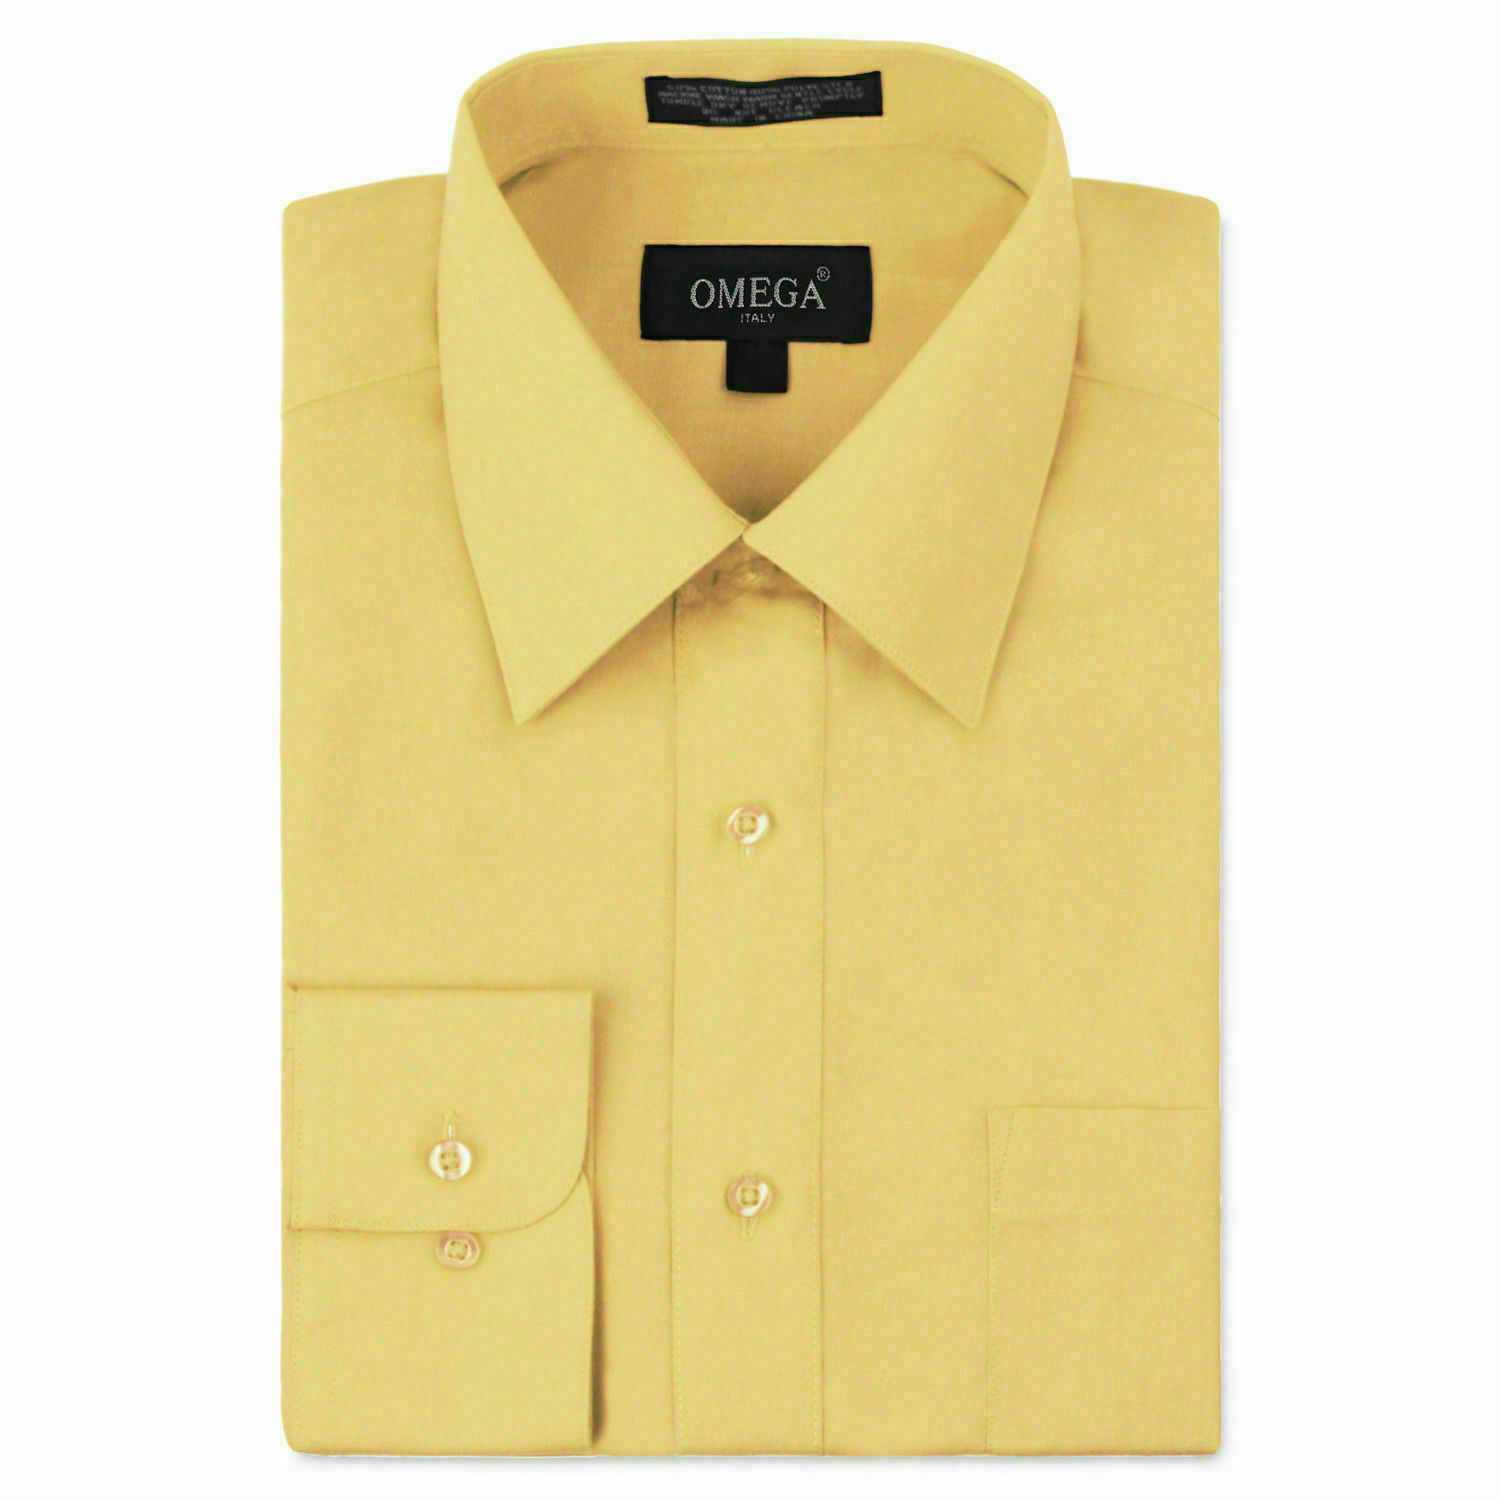 Omega Italy Men's Long Sleeve Regular Fit Light Yellow Dress Shirt - L